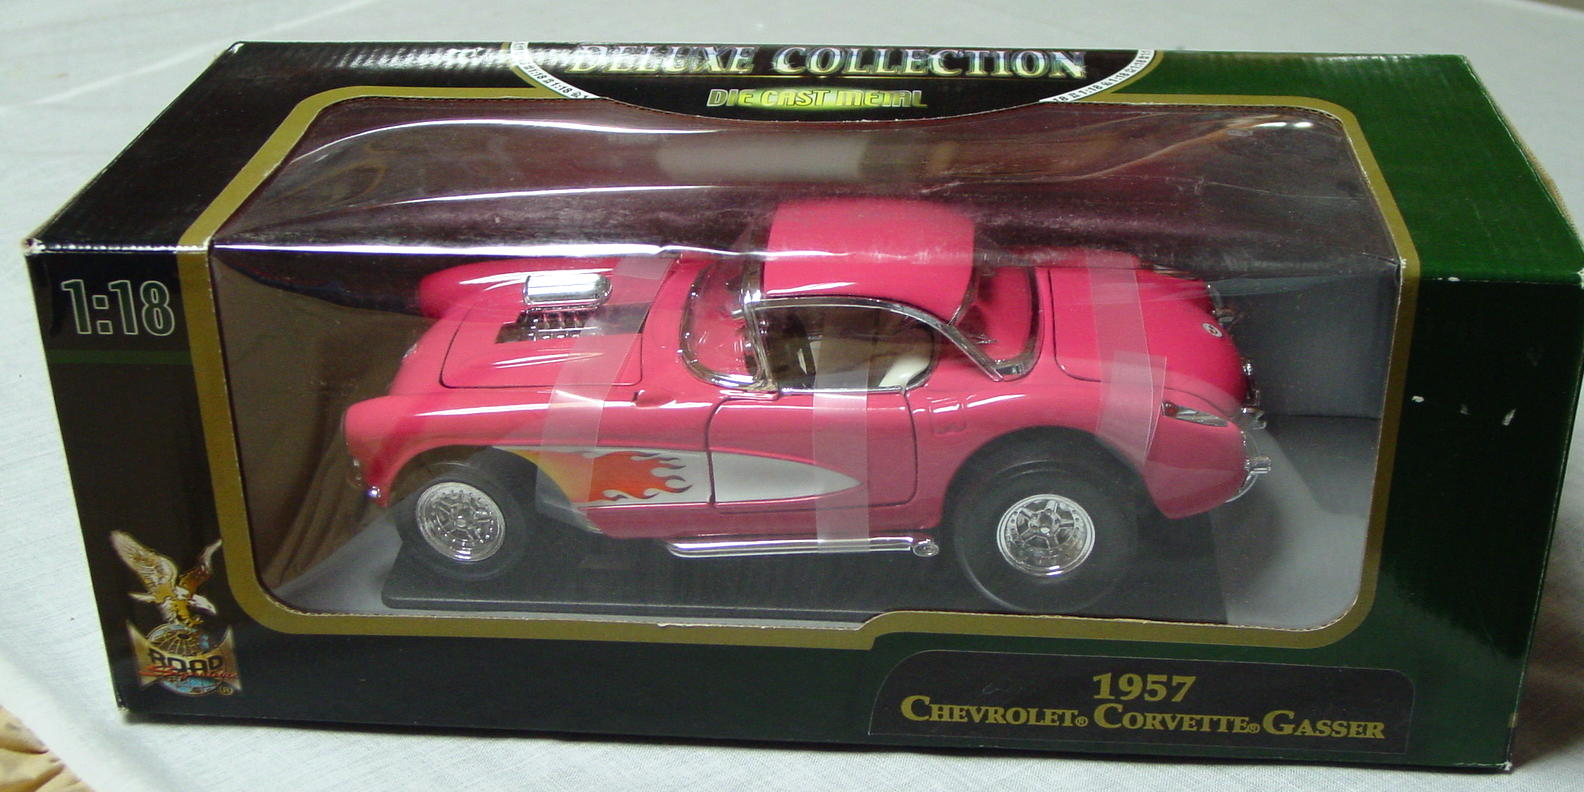 1_18 Scale - YATMING 57 Corvette Gasser Pink